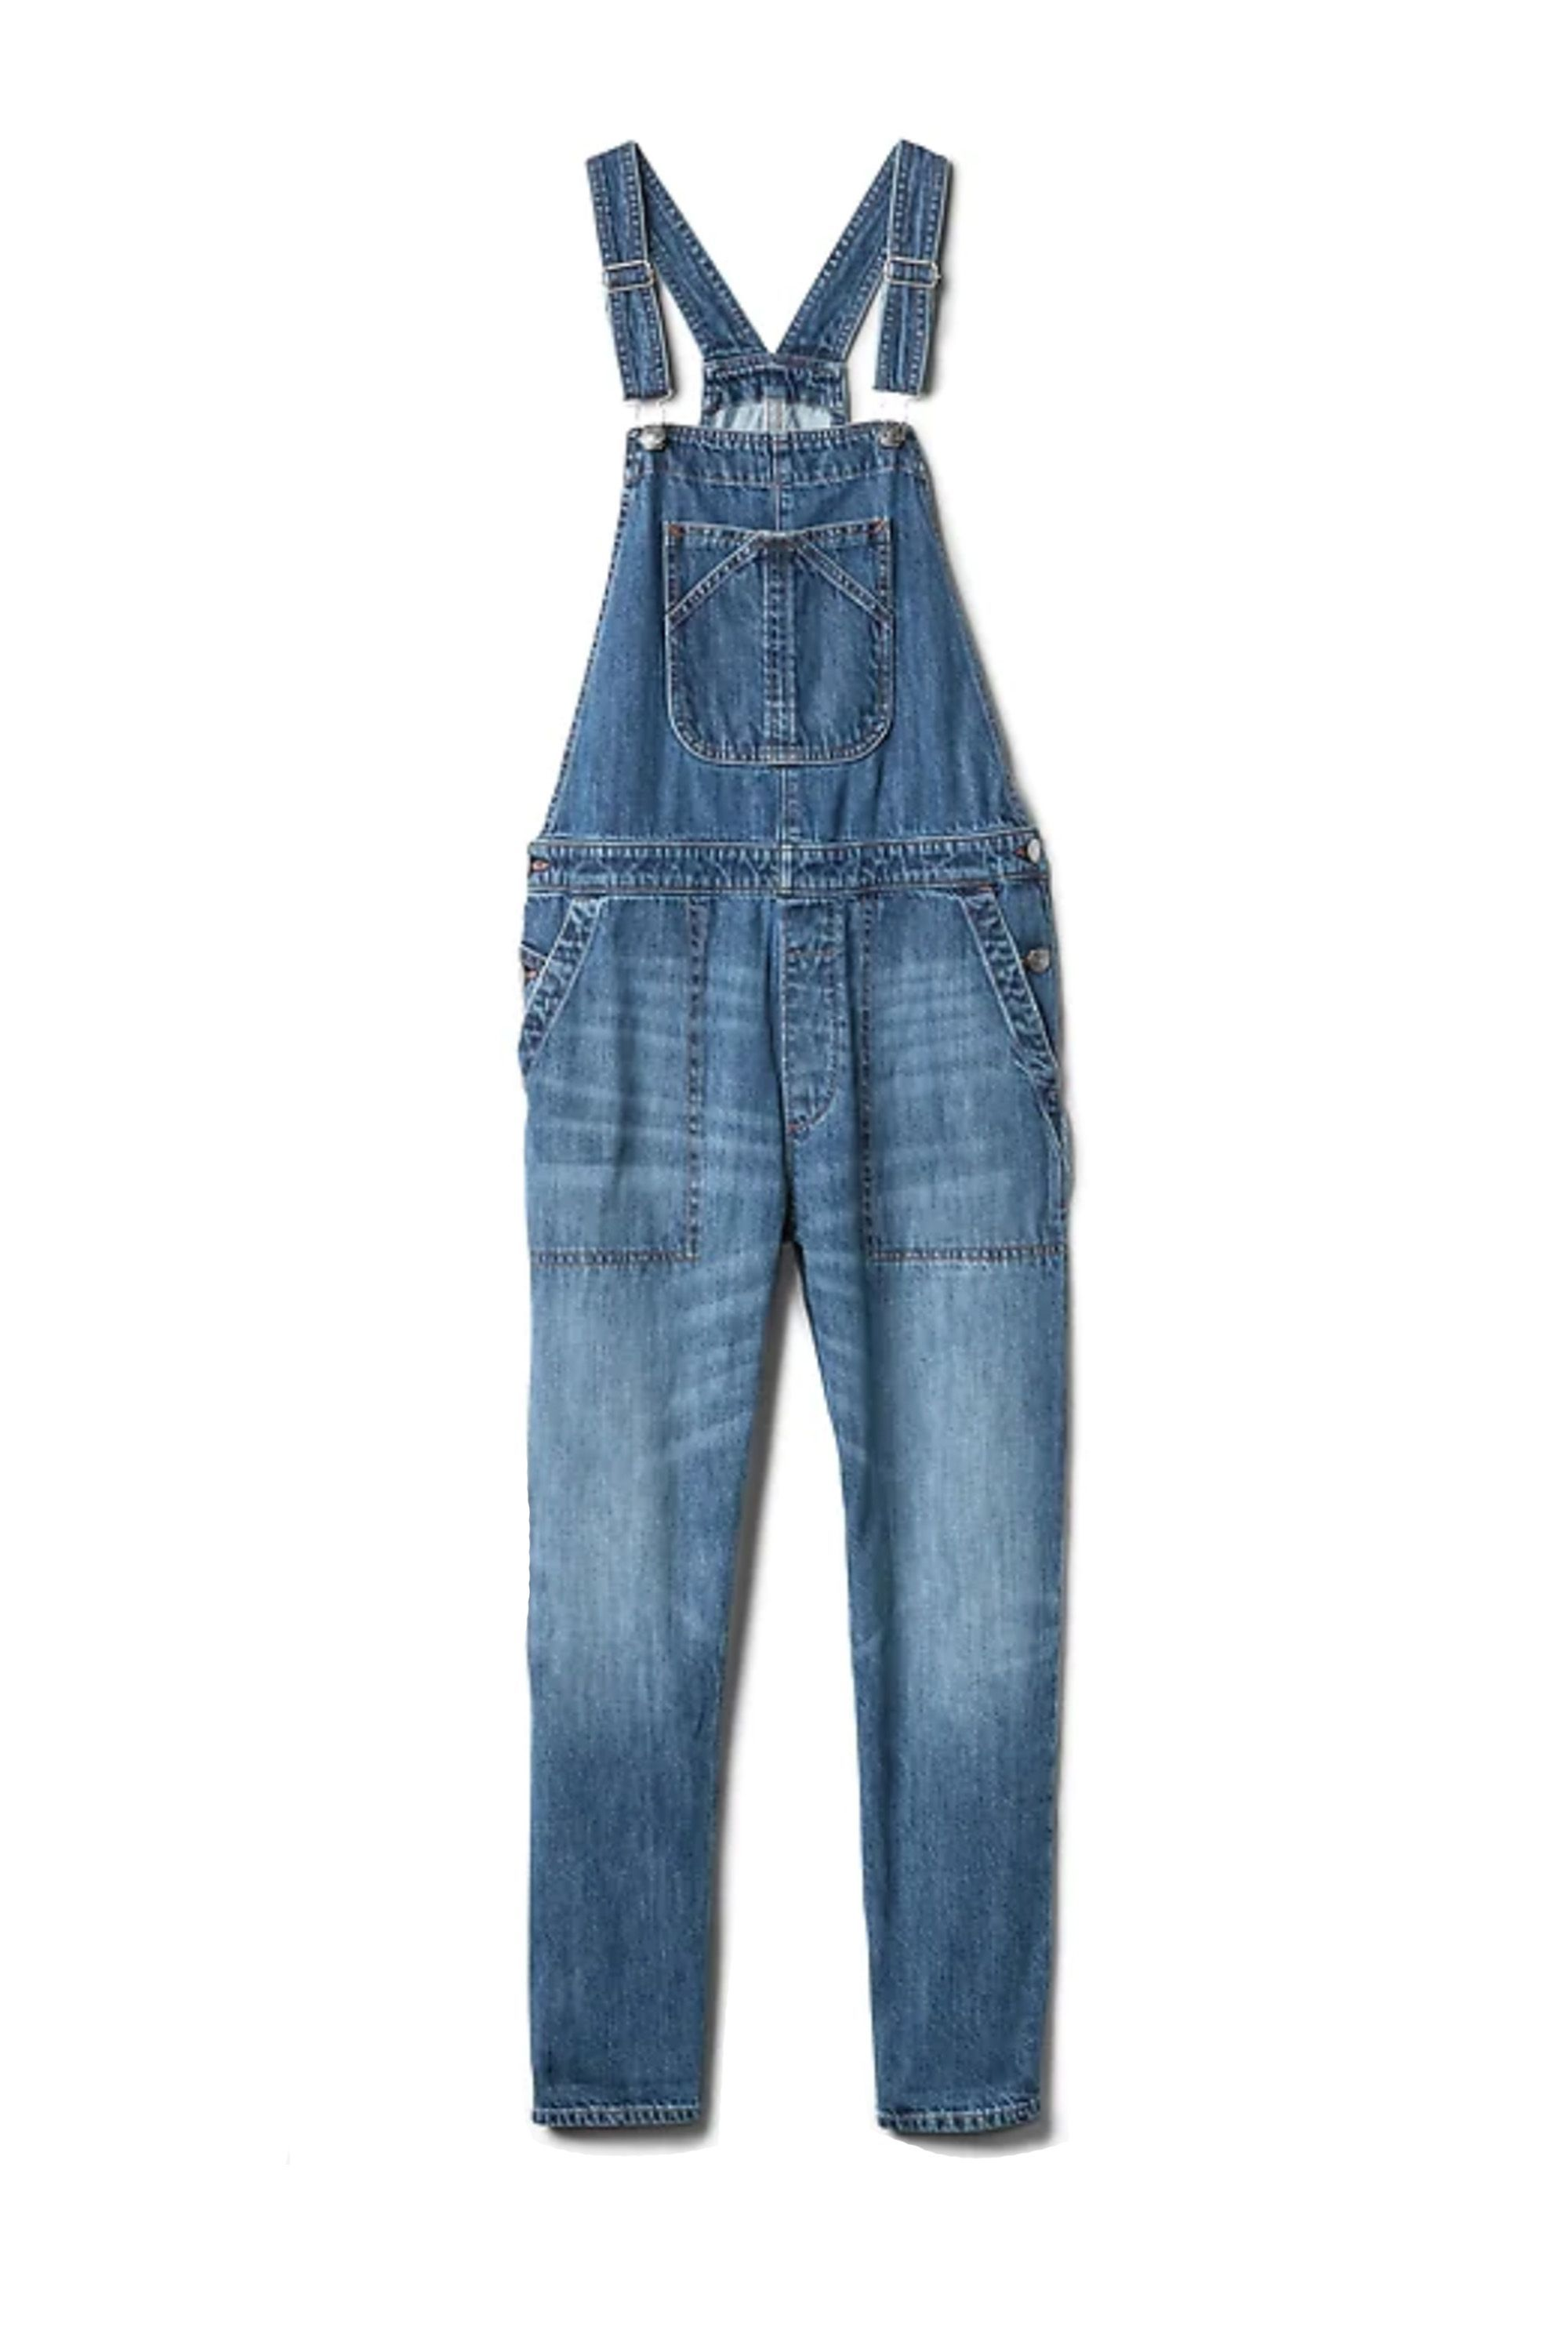 d8bf228f6d2 The Best Denim Jumpsuits of 2018 - 15 Ways to Make The Denim Jumpsuit Work  for You